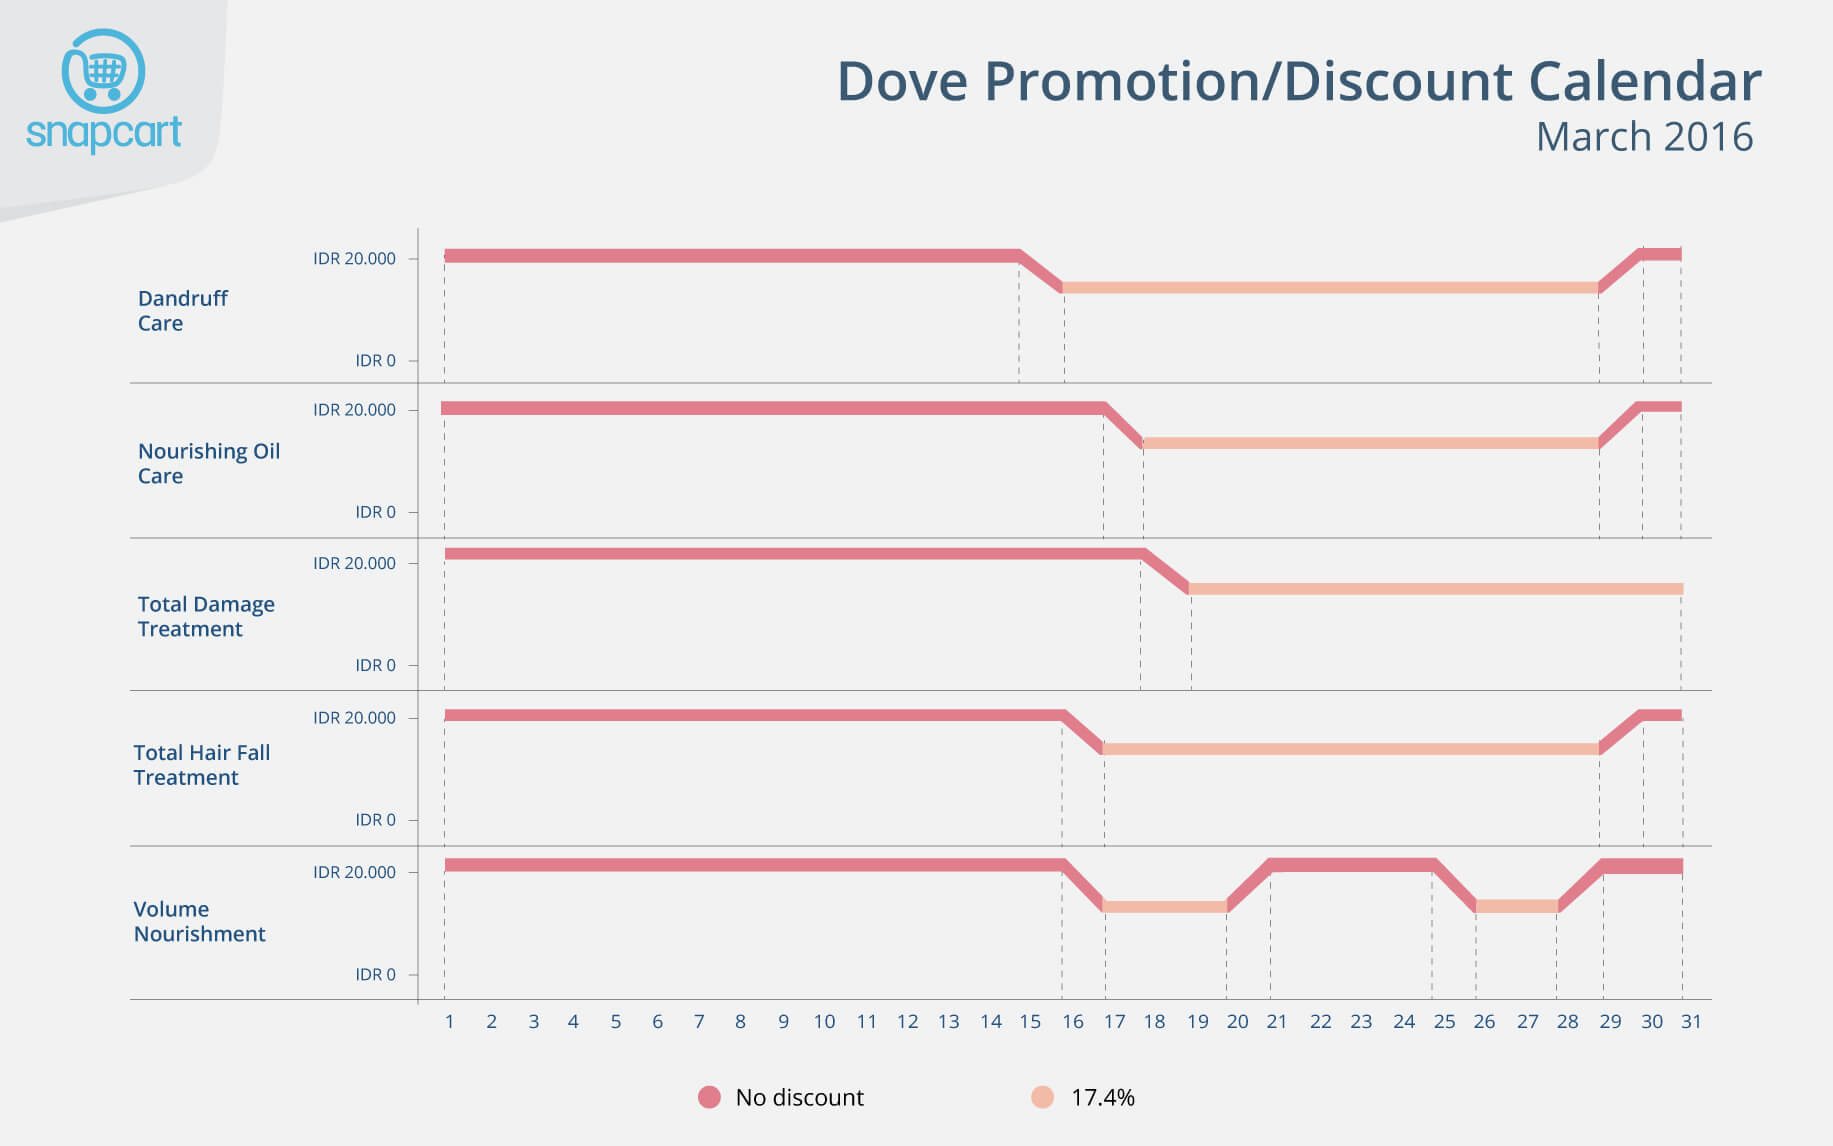 Dove Promotion Discount Calendar